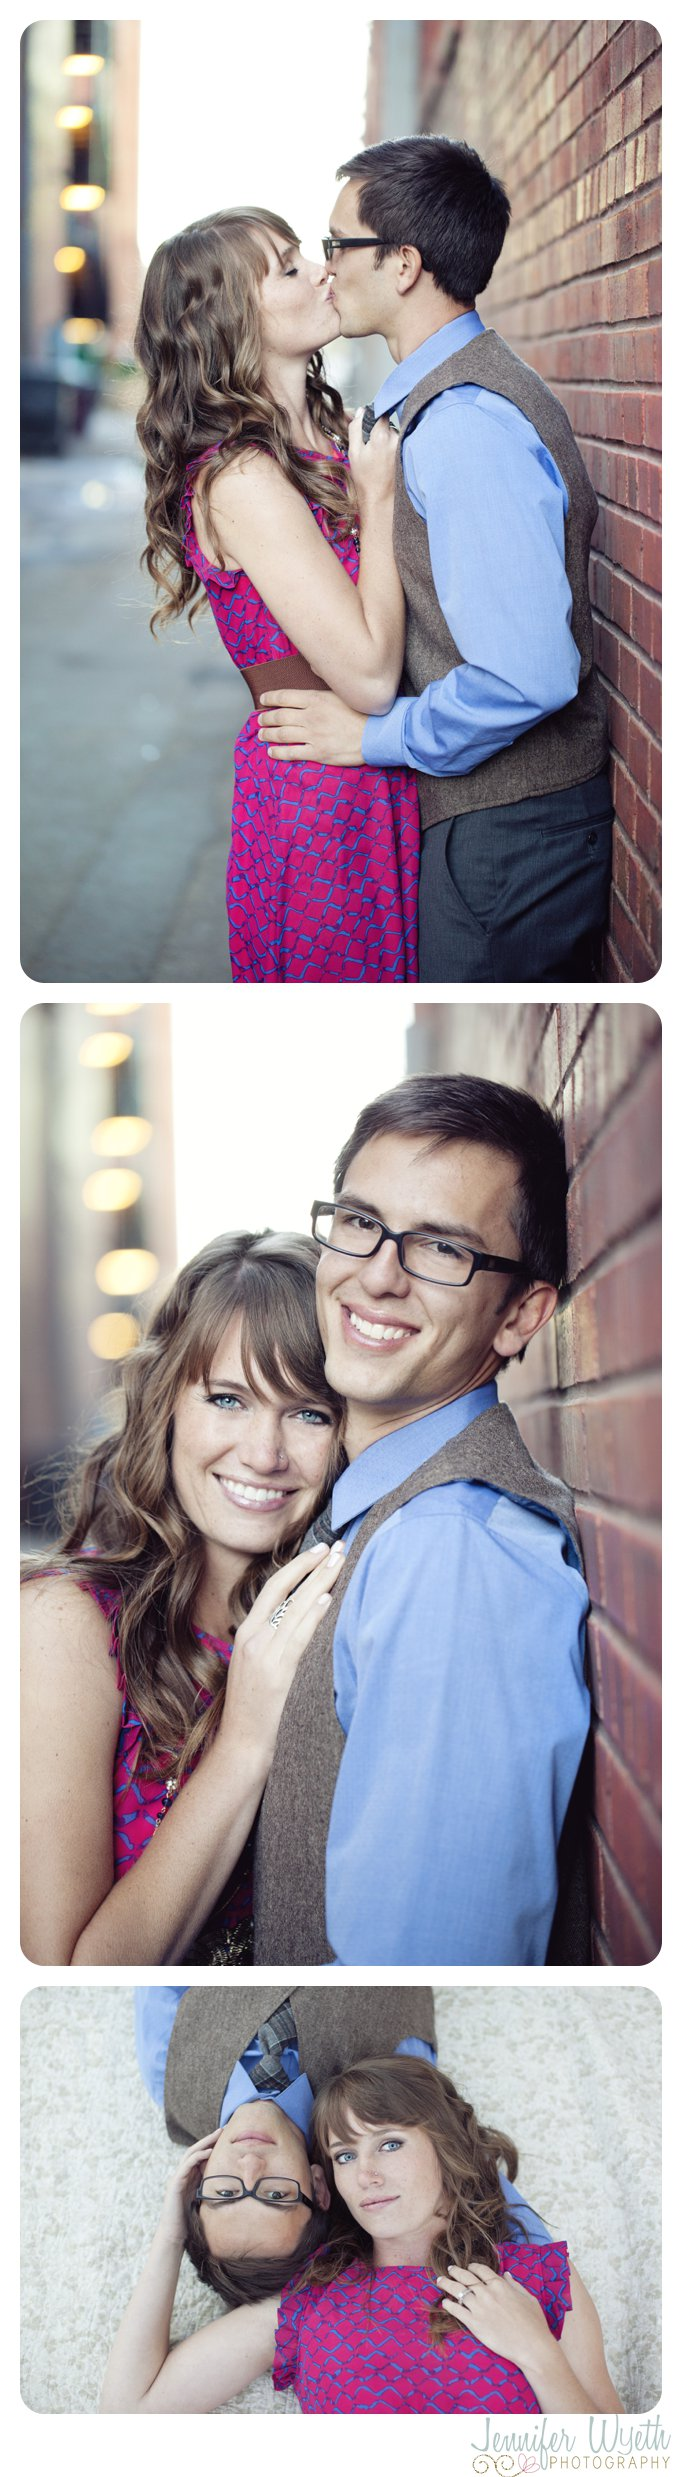 couple snuggles up against a red brick wall in alley